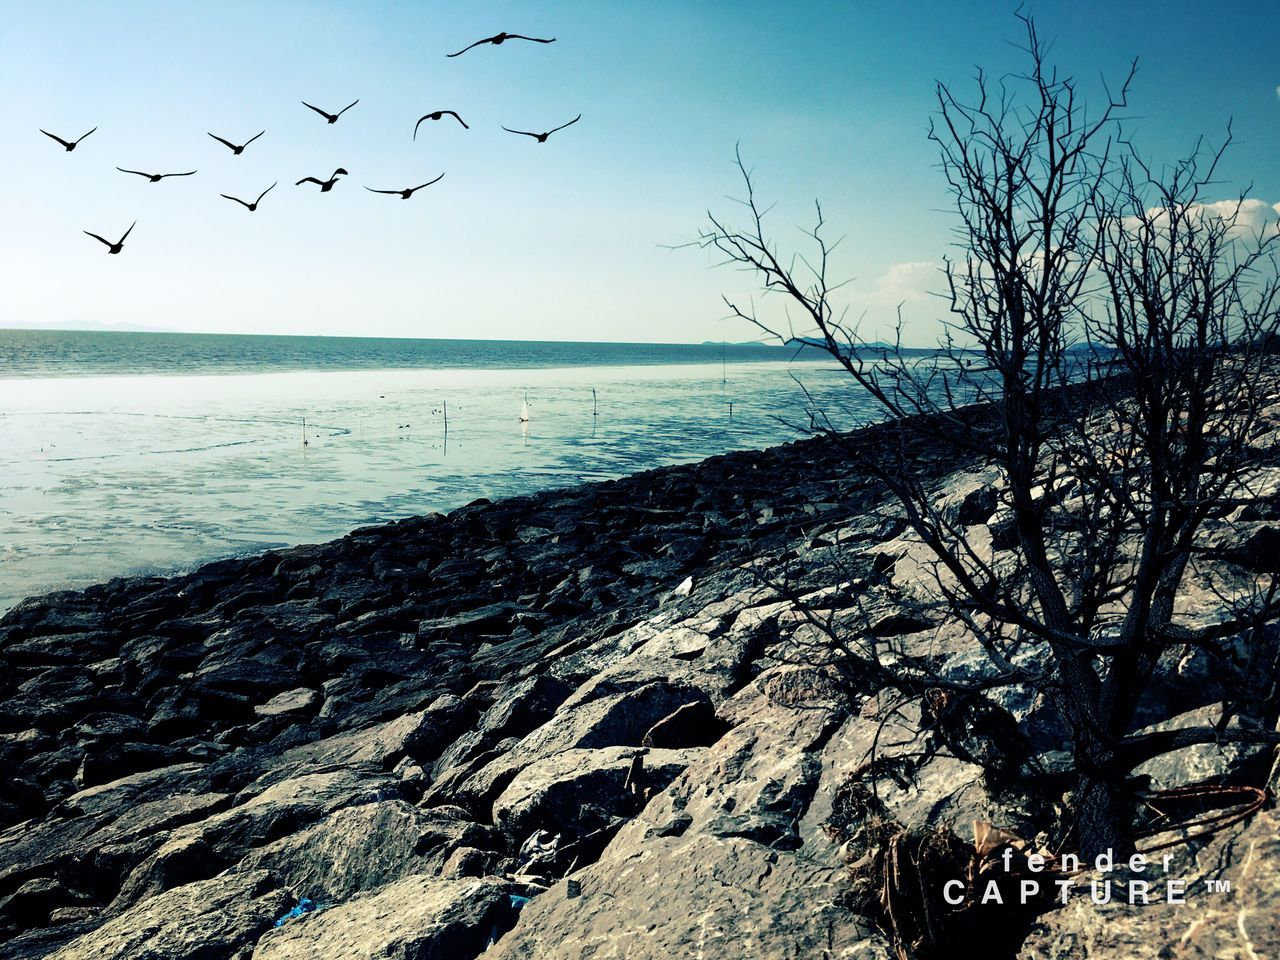 sea, nature, flock of birds, bird, beauty in nature, horizon over water, water, scenics, flying, large group of animals, tranquil scene, sky, tranquility, no people, animal themes, outdoors, animals in the wild, day, tree